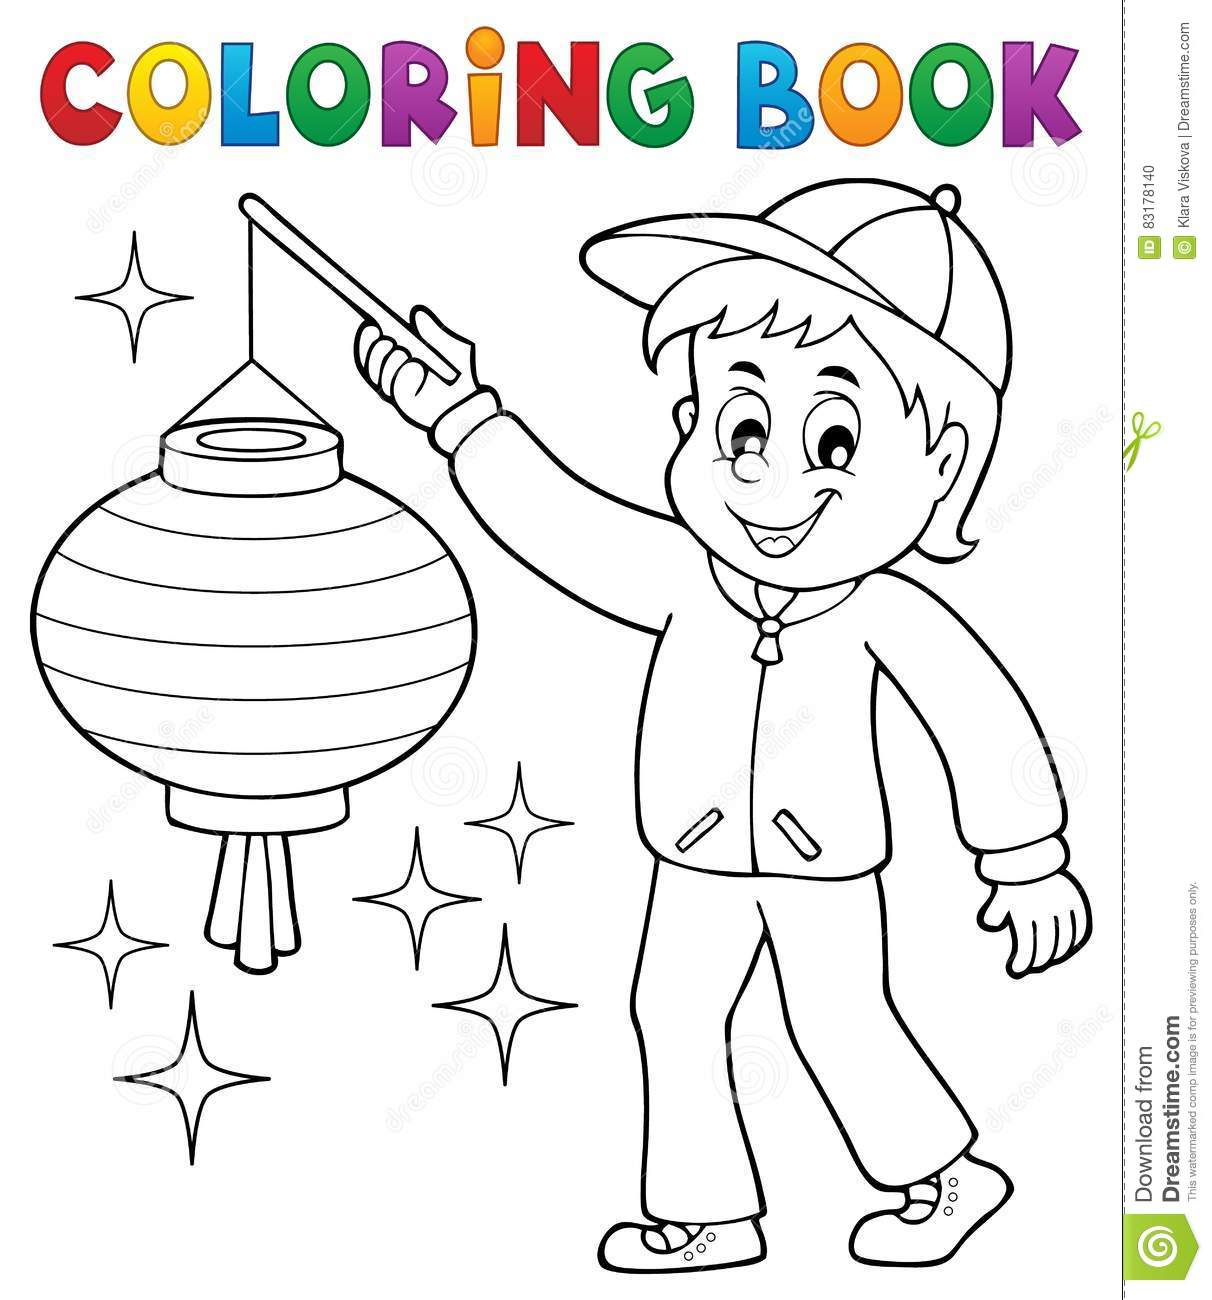 Gar on de livre de coloriage avec le lampion illustration de vecteur image 83178140 - Dessin lampion ...